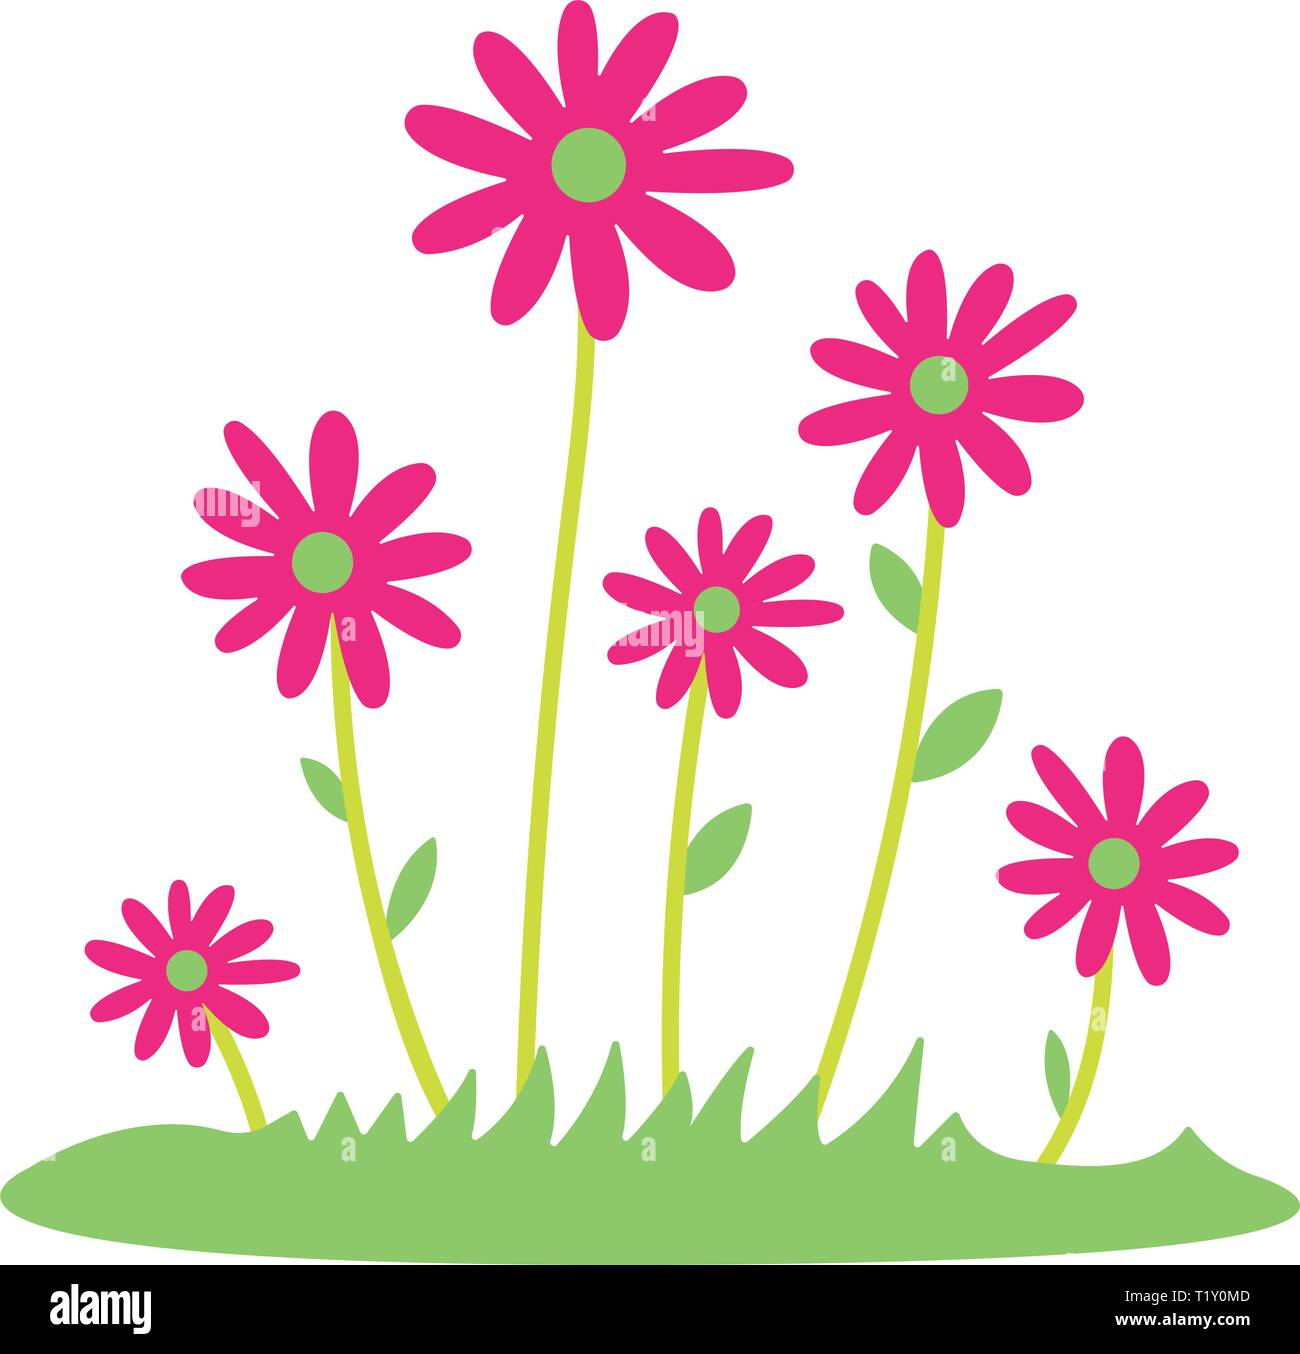 Colorful Spring Daisy Flowers Vector Illustration Grass And Wild Flowers Isolated Background Spring Grass Border With Early Spring Flowers And Stock Vector Image Art Alamy